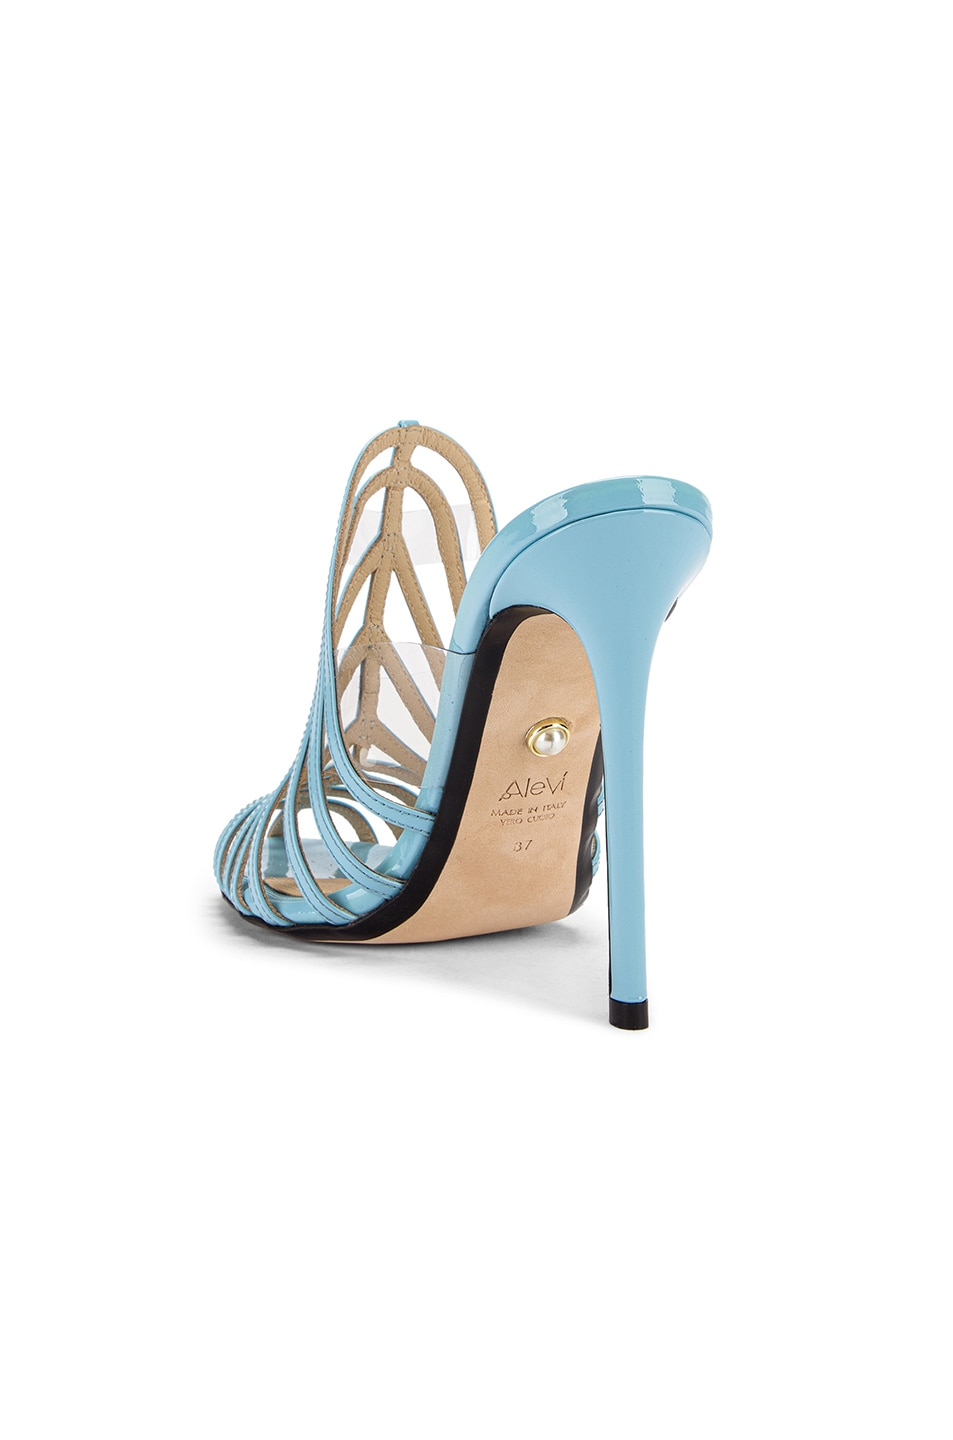 Image 3 of ALEVI Milano Alessandra Mule in Patent Sky